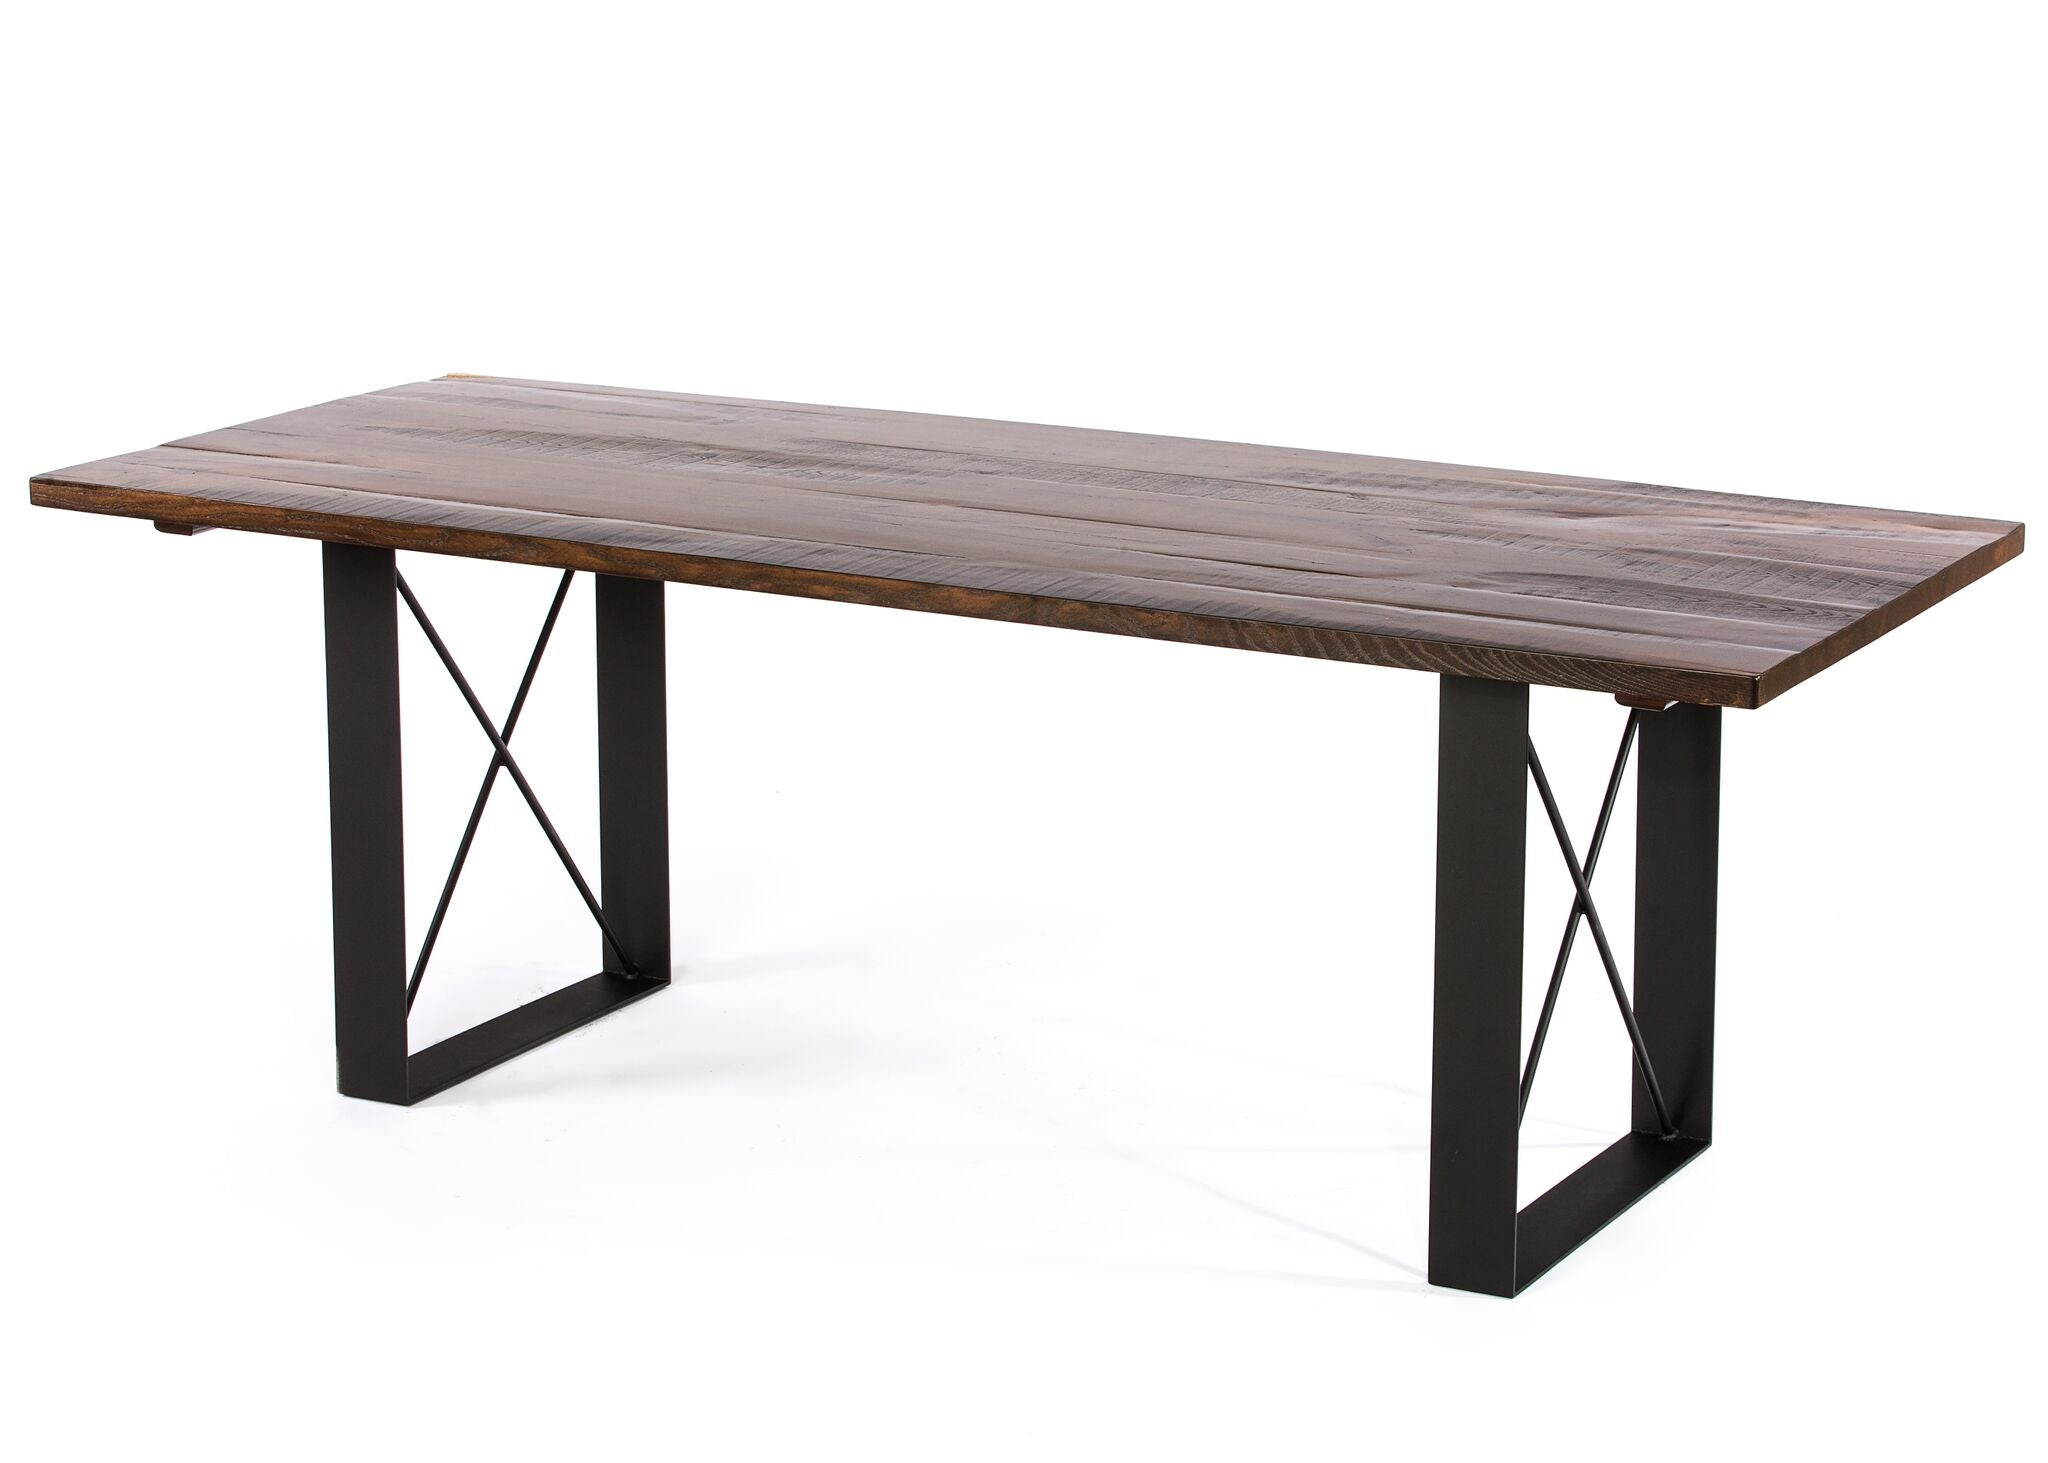 Wood Tables | Soho Table | Natural Ash | Natural Steel | CUSTOM SIZE L 60 W 30 H 29 |